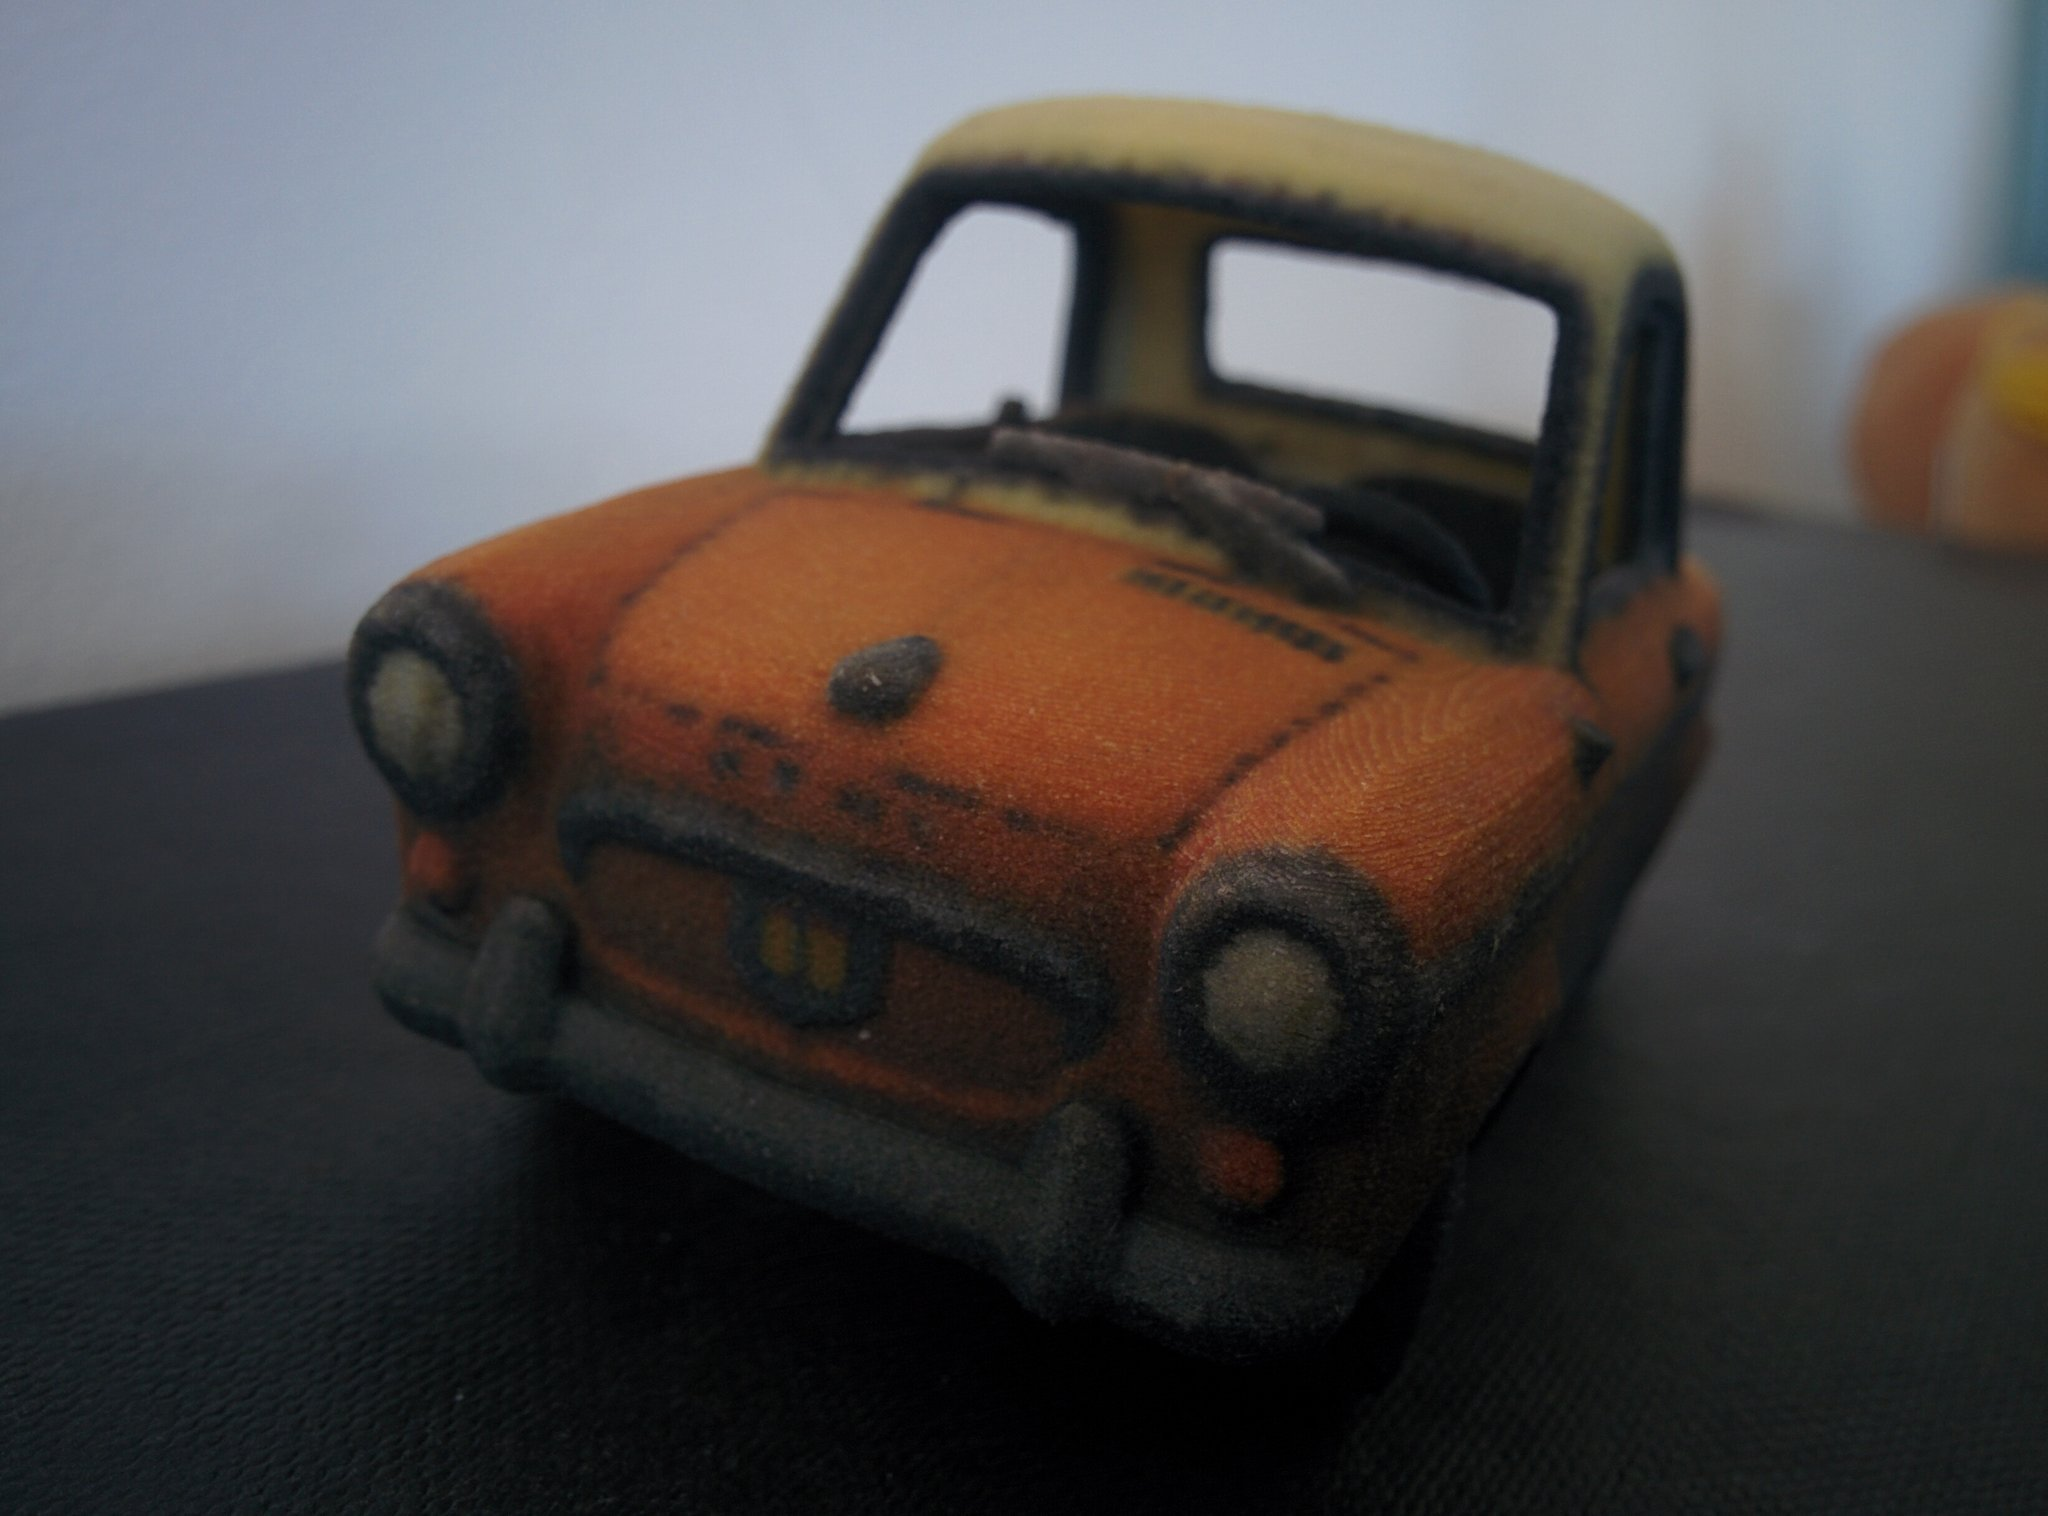 An example of a 3D printed model using Renderfab. Image via Renderfab.